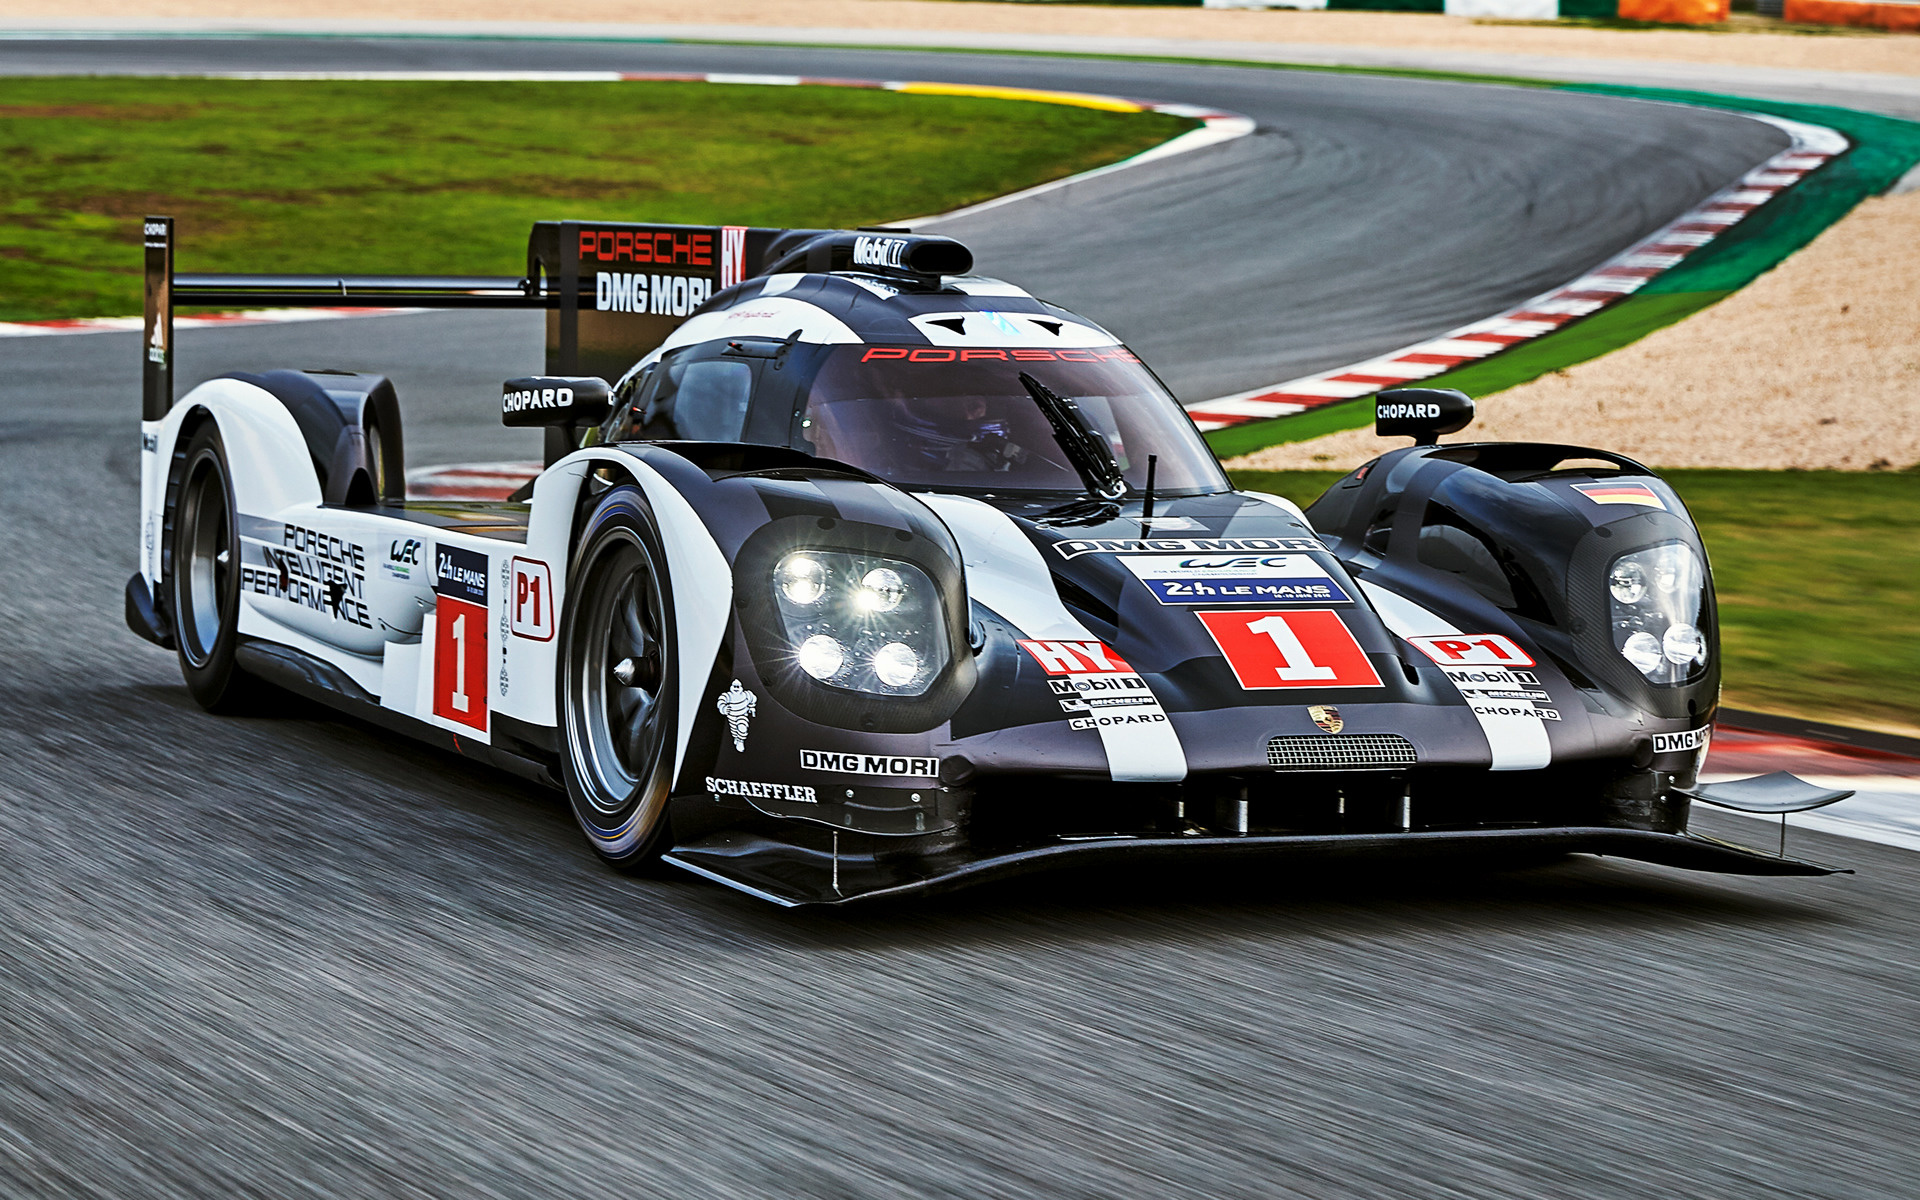 Porsche 919 Hybrid (2016) Wallpapers and HD Images - Car Pixel